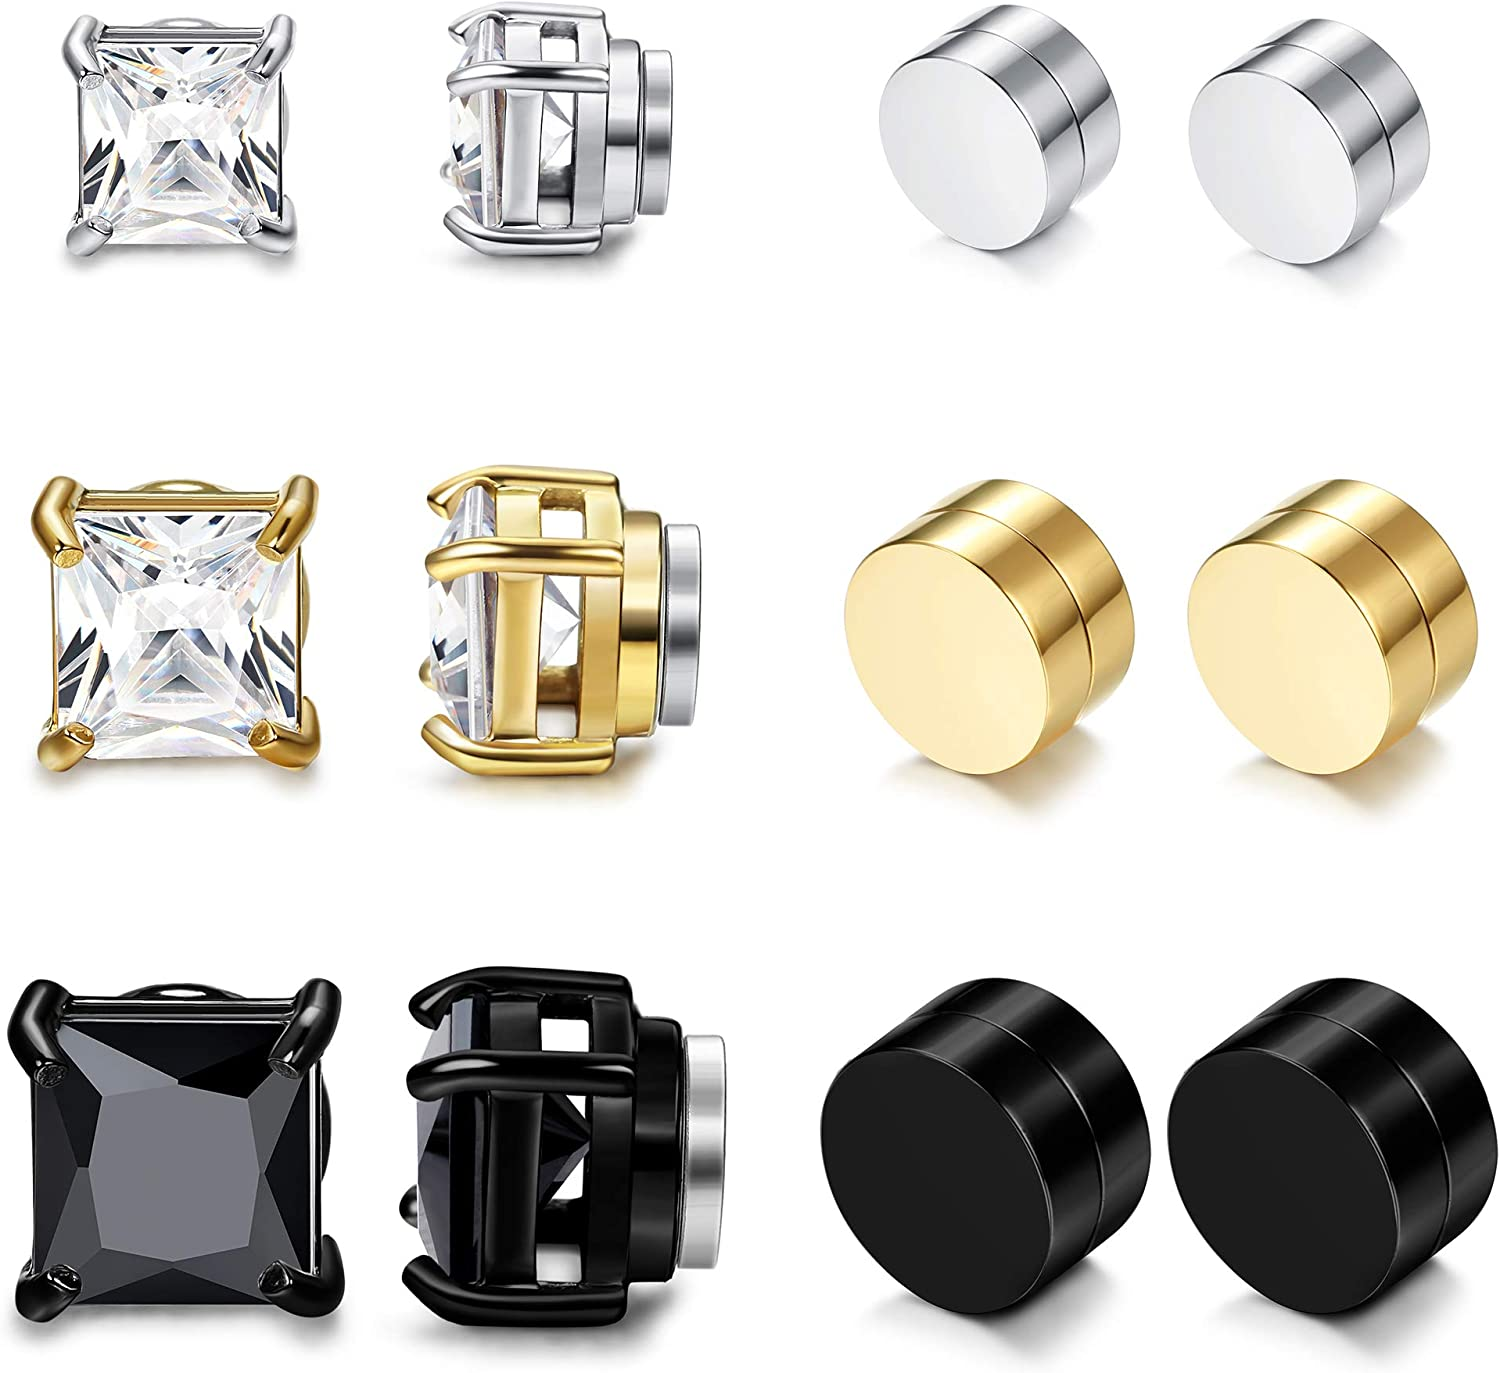 Jstyle 6 Pairs Stainless Steel Mens Womens Magnetic Earrings CZ Earrings Clip On CZ Non-Pierced 6/8/10mm